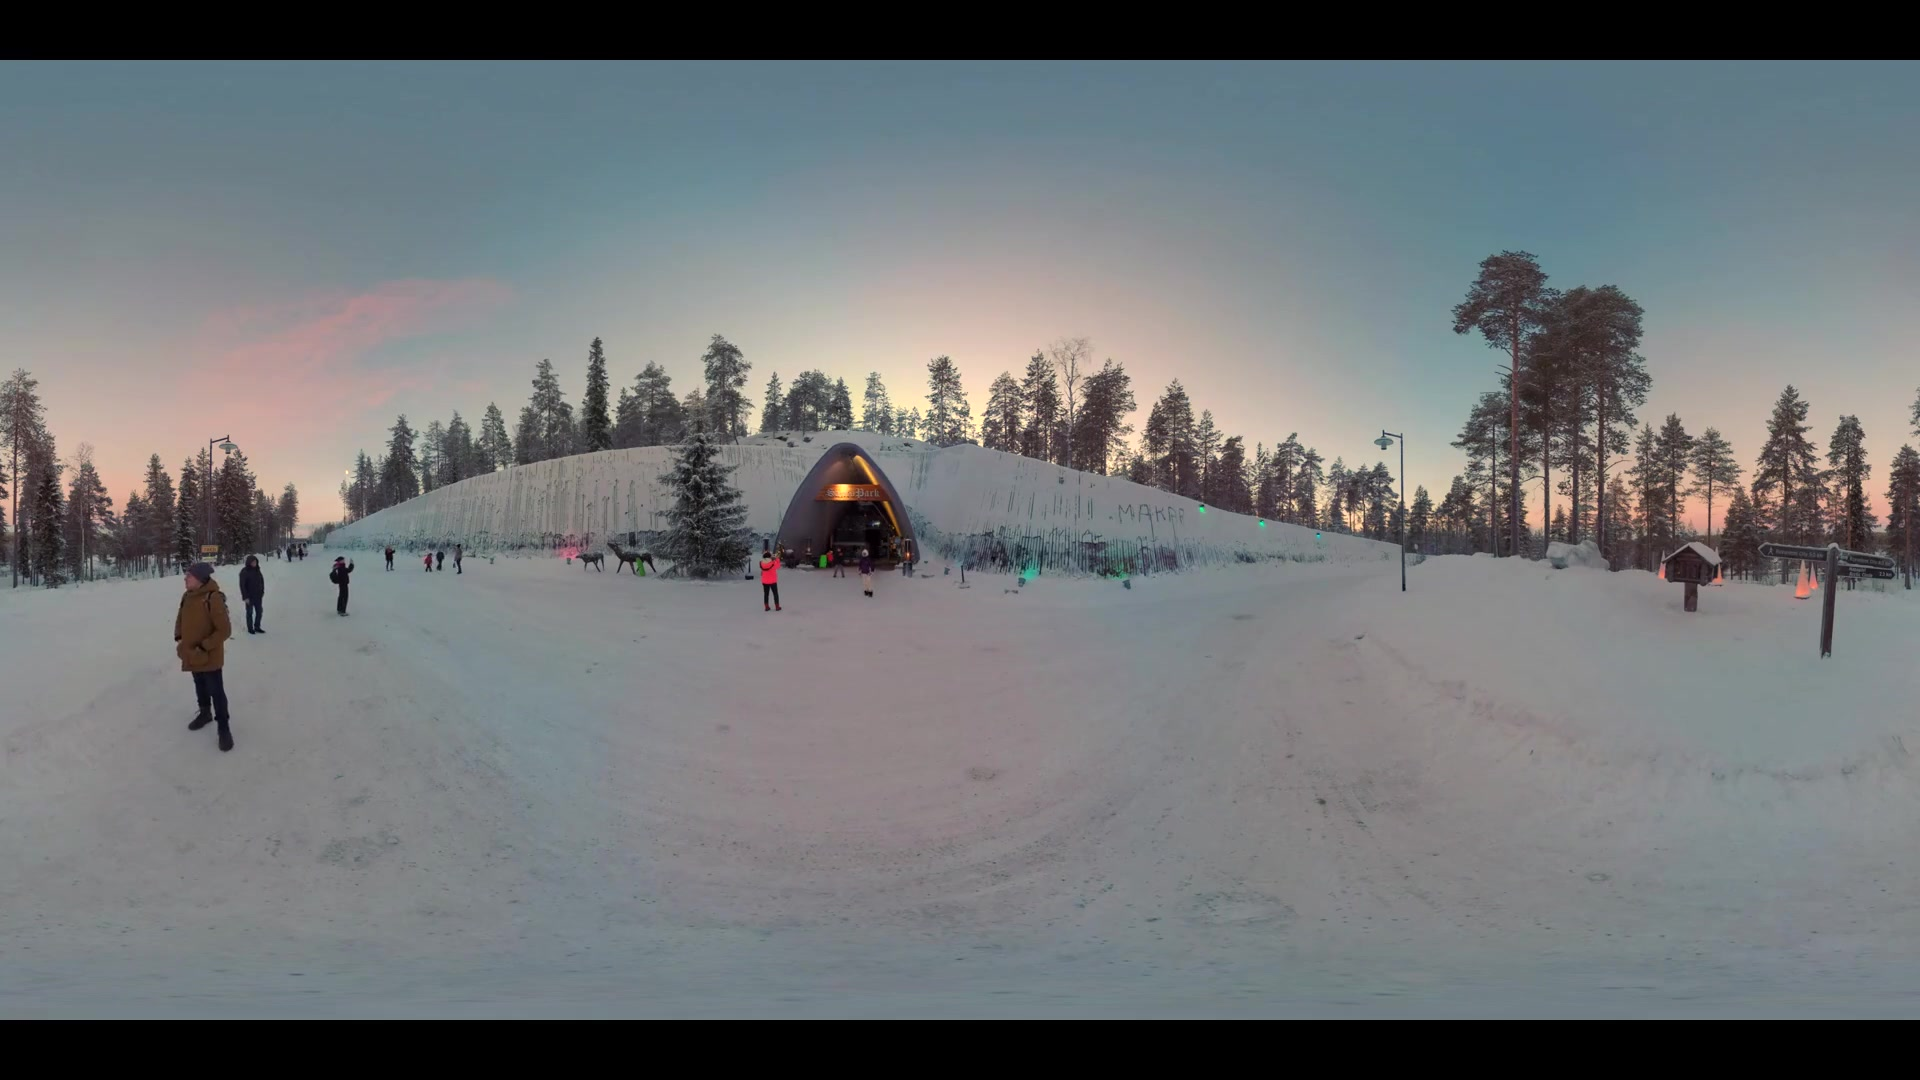 ROVANIEMI, FINLAND- JANUARY 01, 2017: 360 VR Video. People visiting Santa Park with Santa Claus cavern. It was opened in November 1998